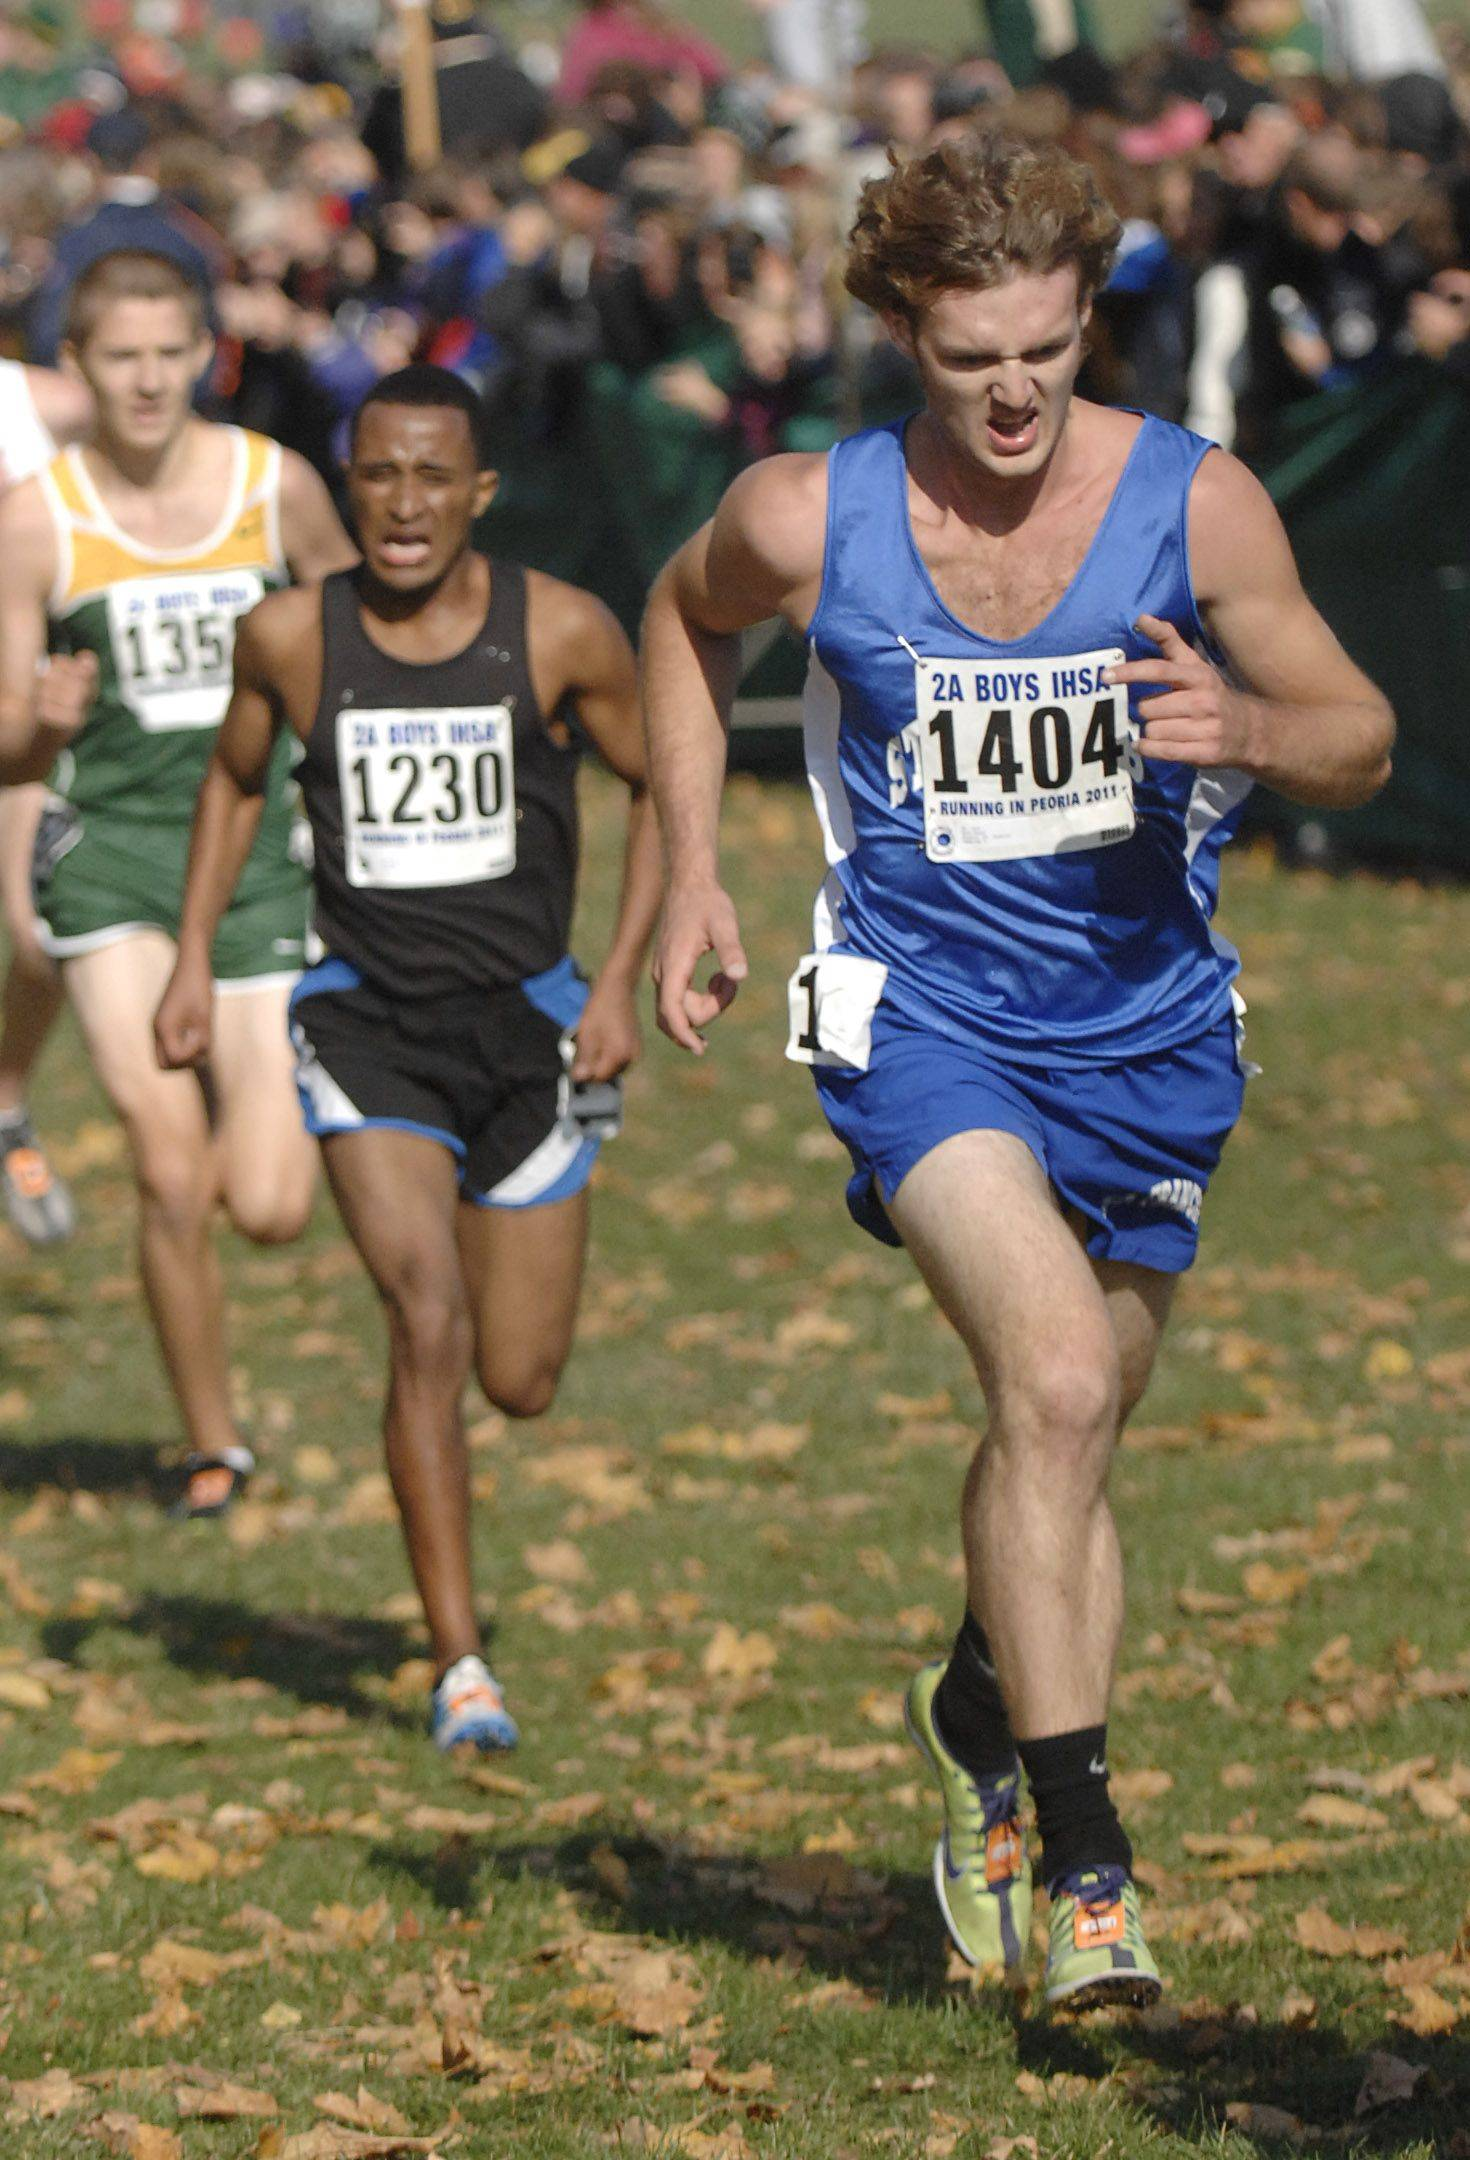 St. Francis' Matt Denny nears the finish to take 42nd place with a time of 15:37 in the 2A state cross country final.